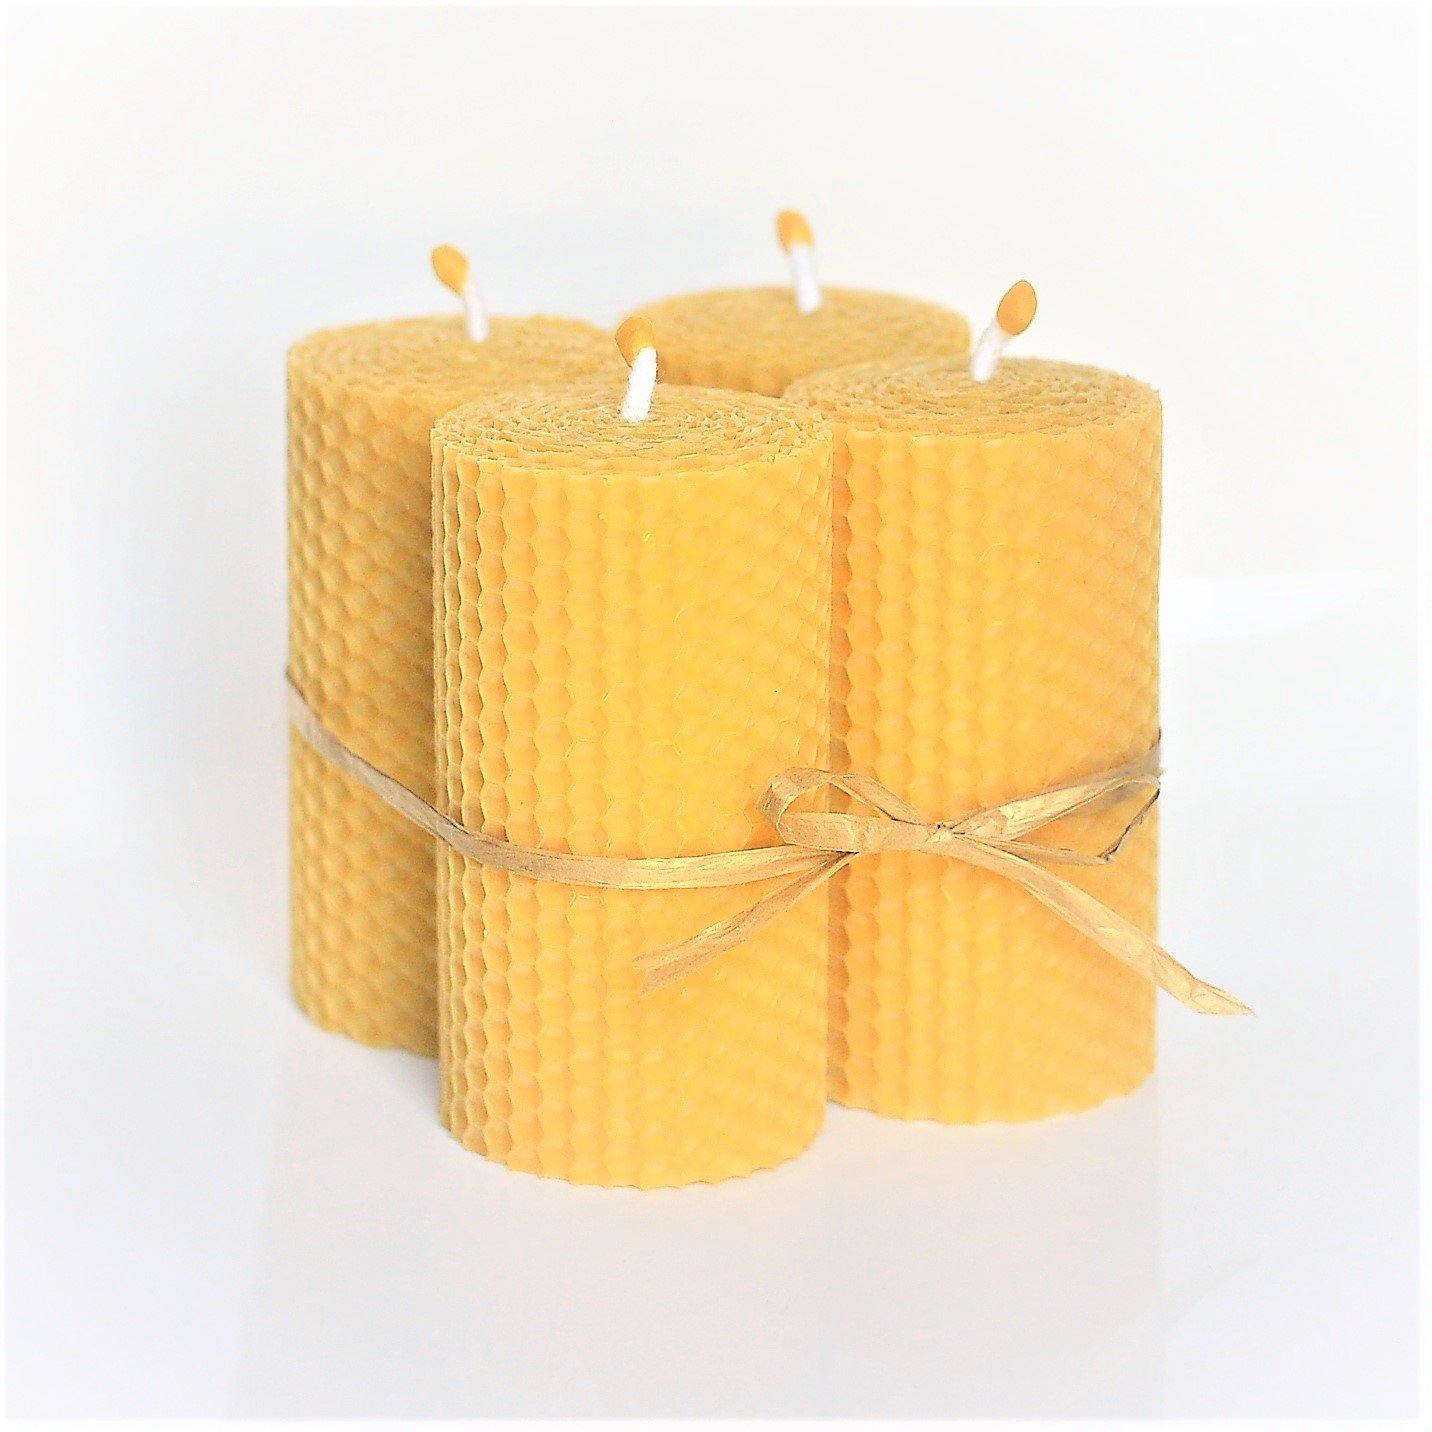 100% Pure Beeswax Candle Set of 4 Candles Size 4 inch x 2 inch Hand Rolled Decorated Natural Honey/Beeswax Scent 100% Handmade Eco Candle Honey Candles